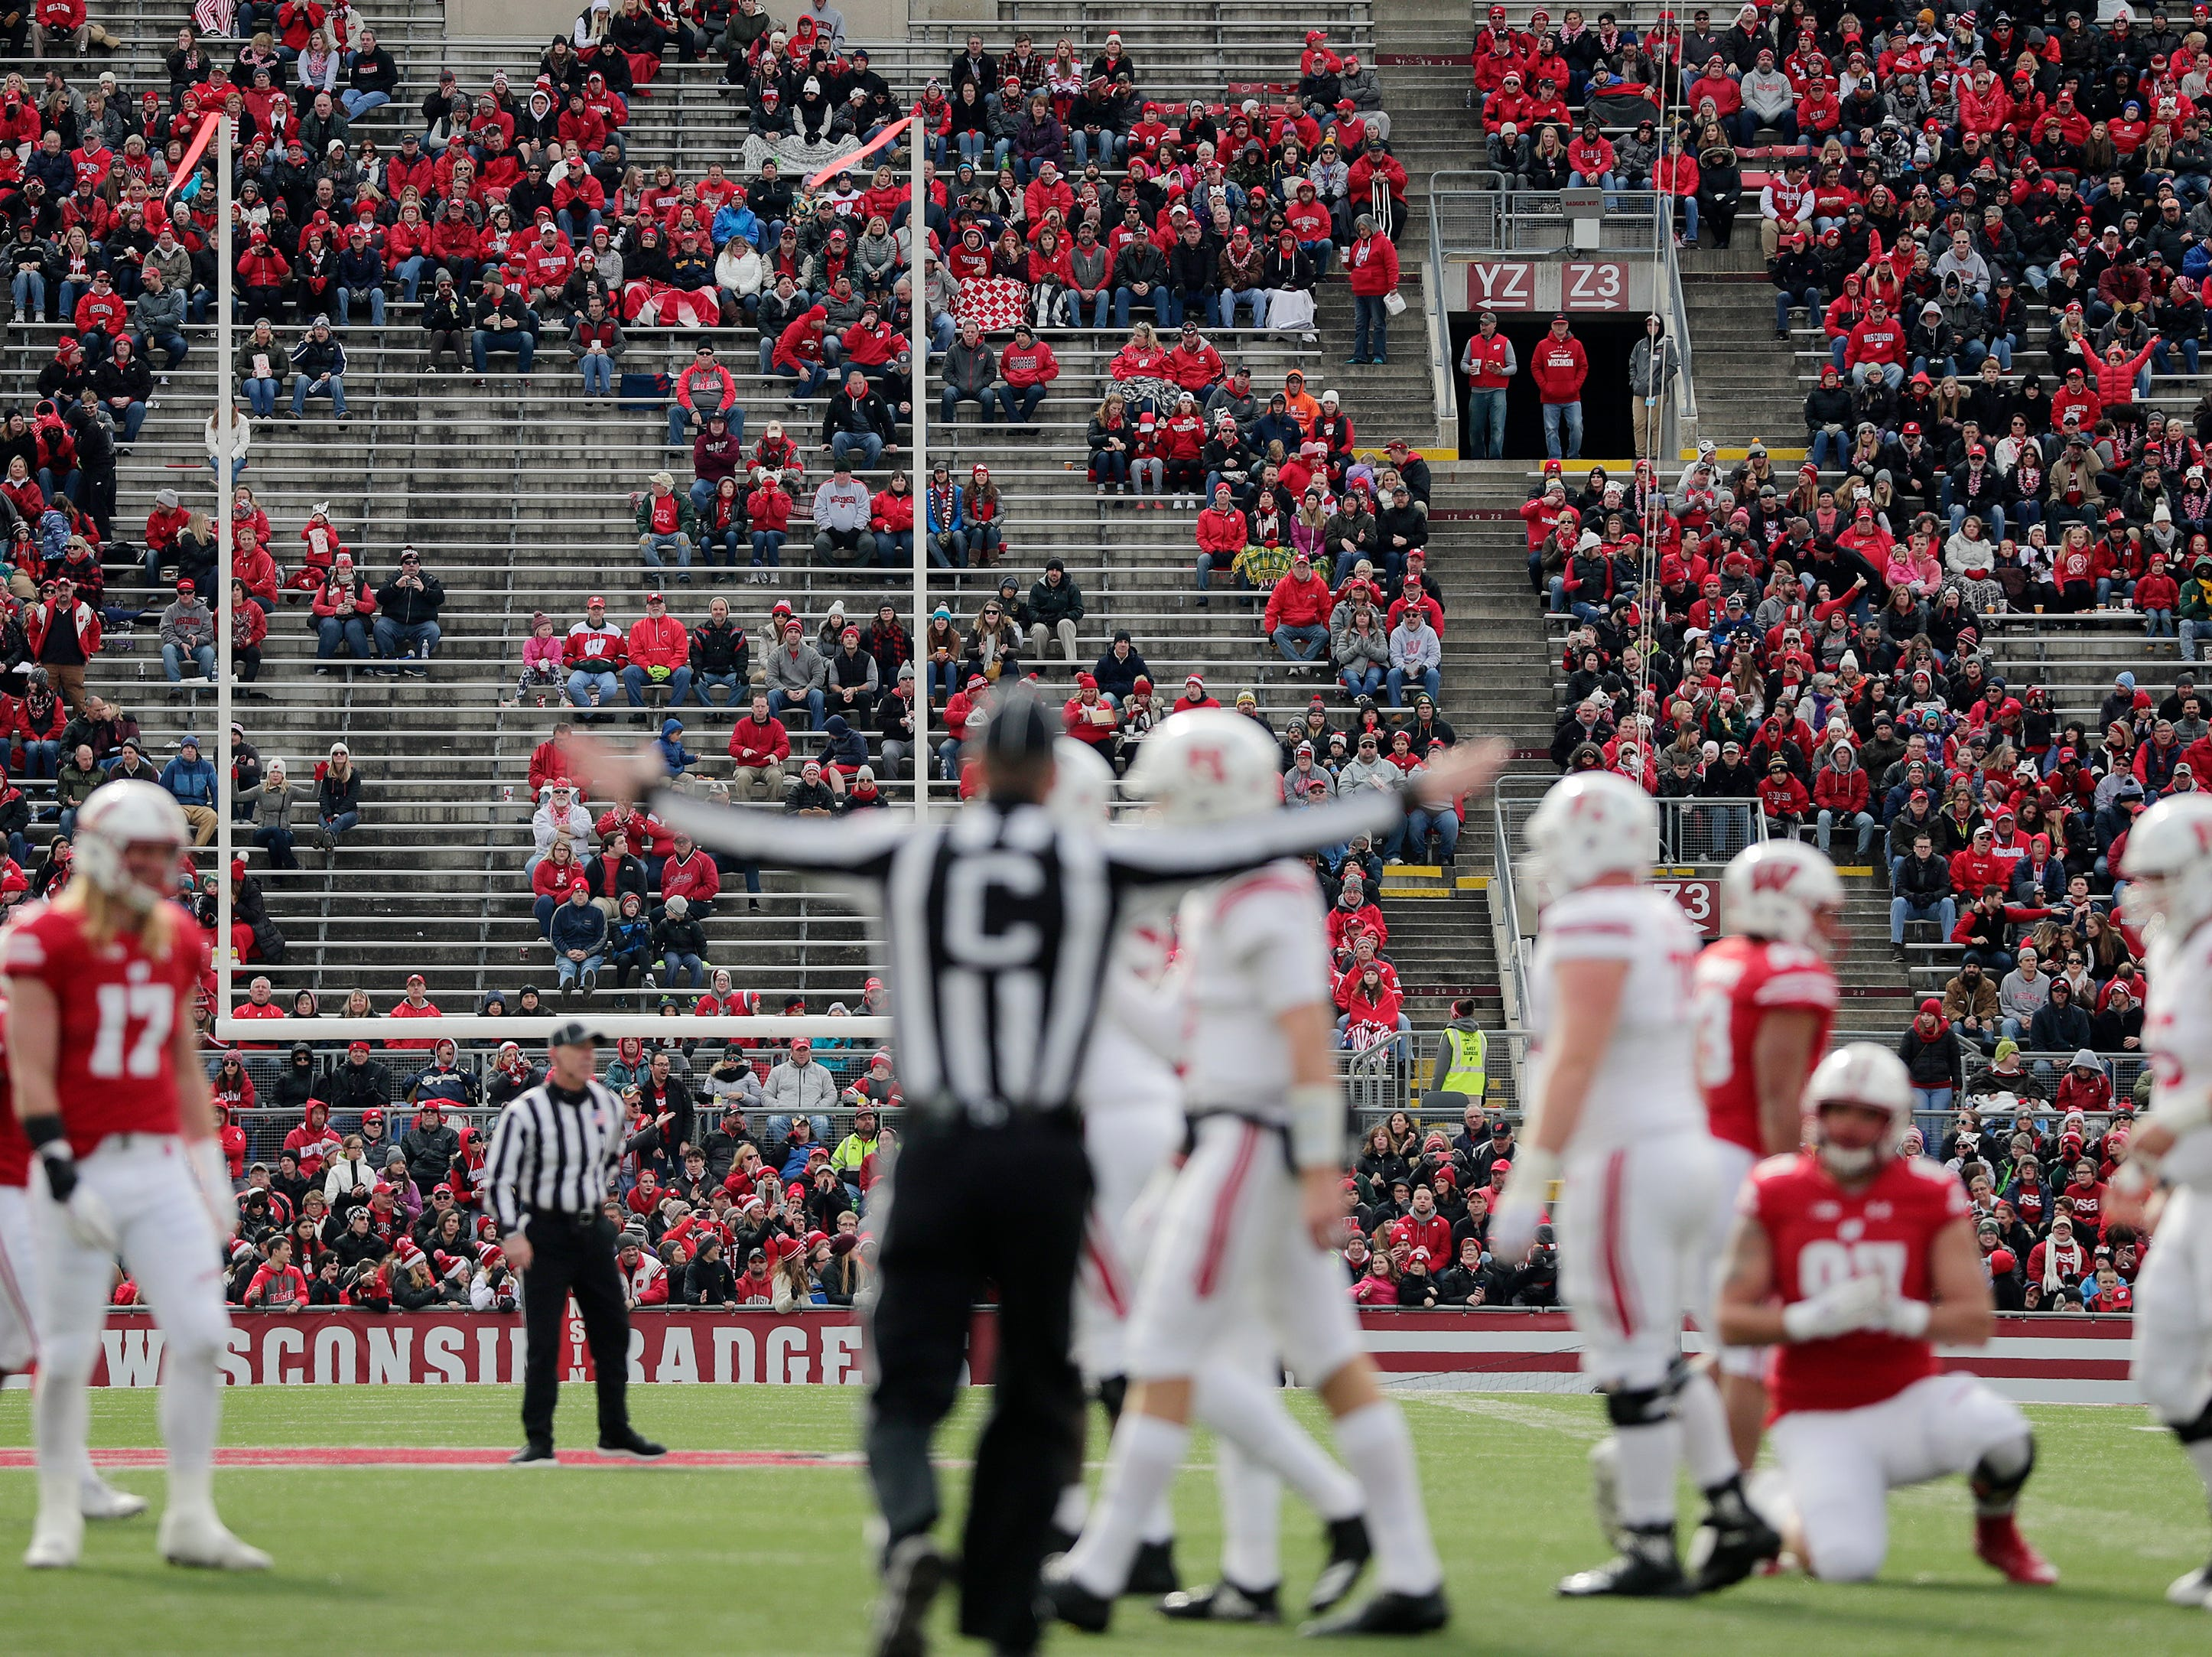 Fans watch the Wisconsin Badgers play the Rutgers Scarlet Knights in the second quarter of a Big Ten football game at Camp Randall Stadium on Saturday, November 3, 2018 in Madison, Wis.Adam Wesley/USA TODAY NETWORK-Wisconsin